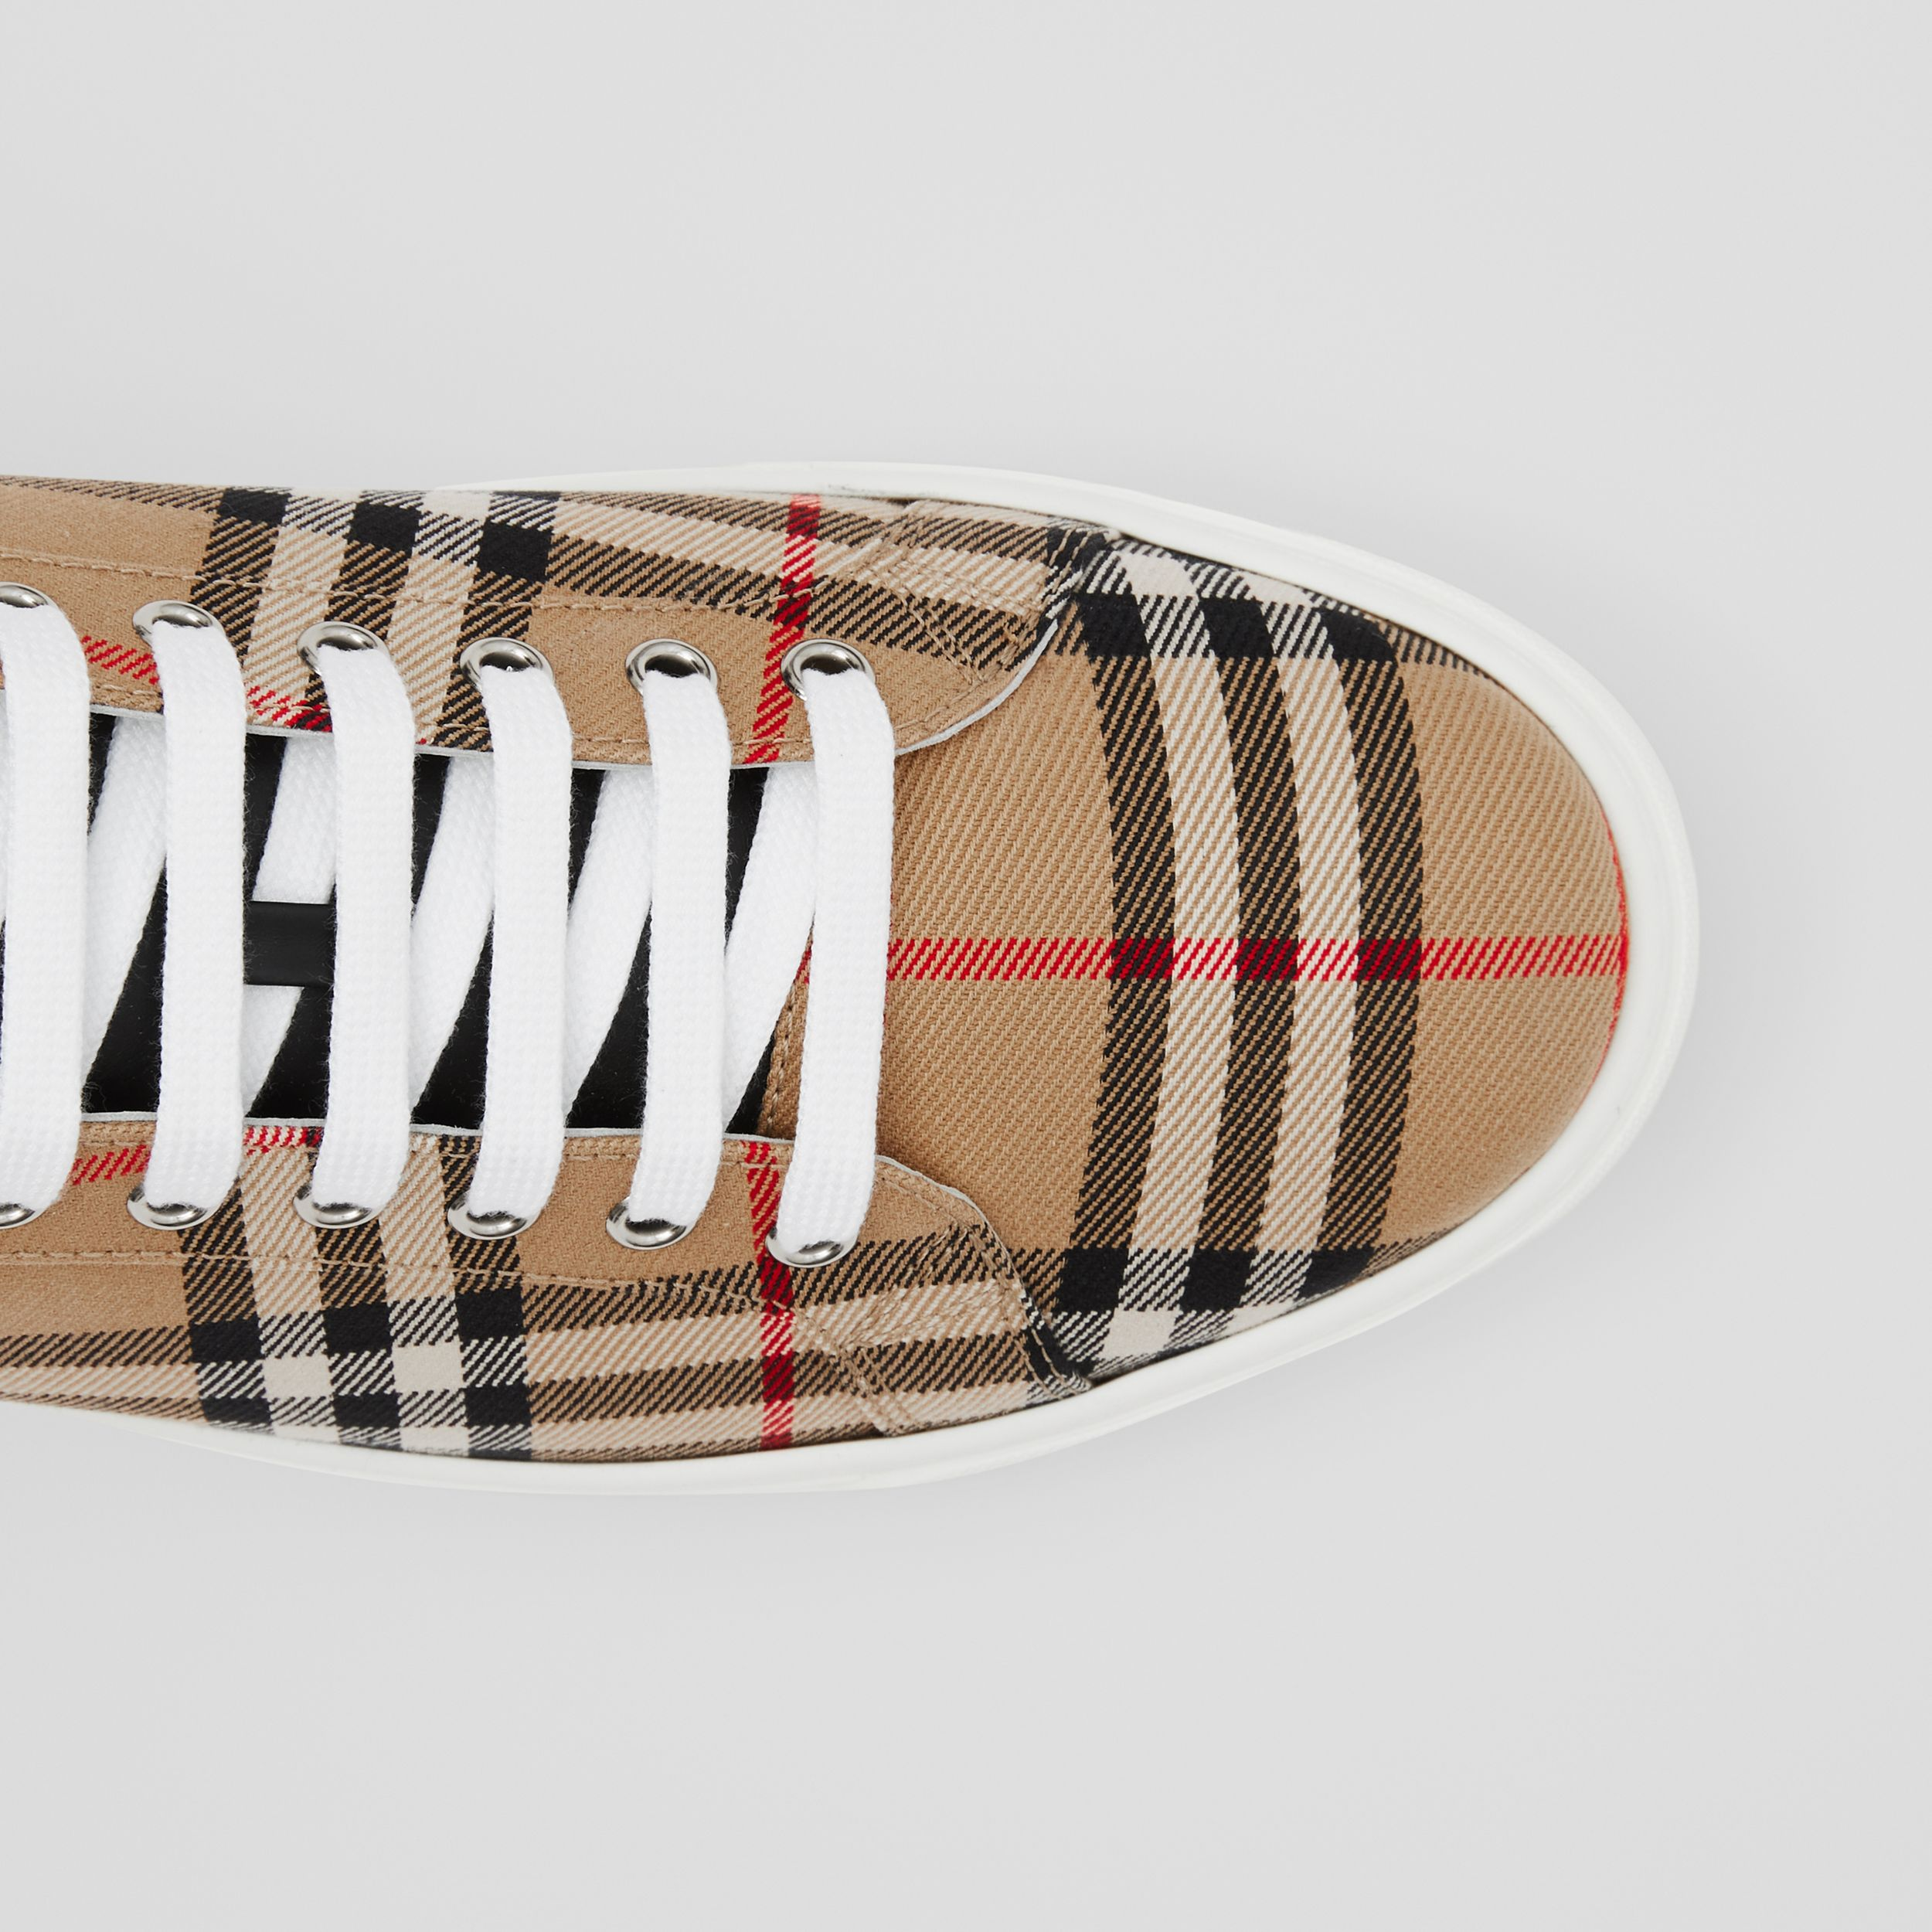 Bio-based Sole Vintage Check and Leather Sneakers in Archive Beige - Men | Burberry Canada - 2